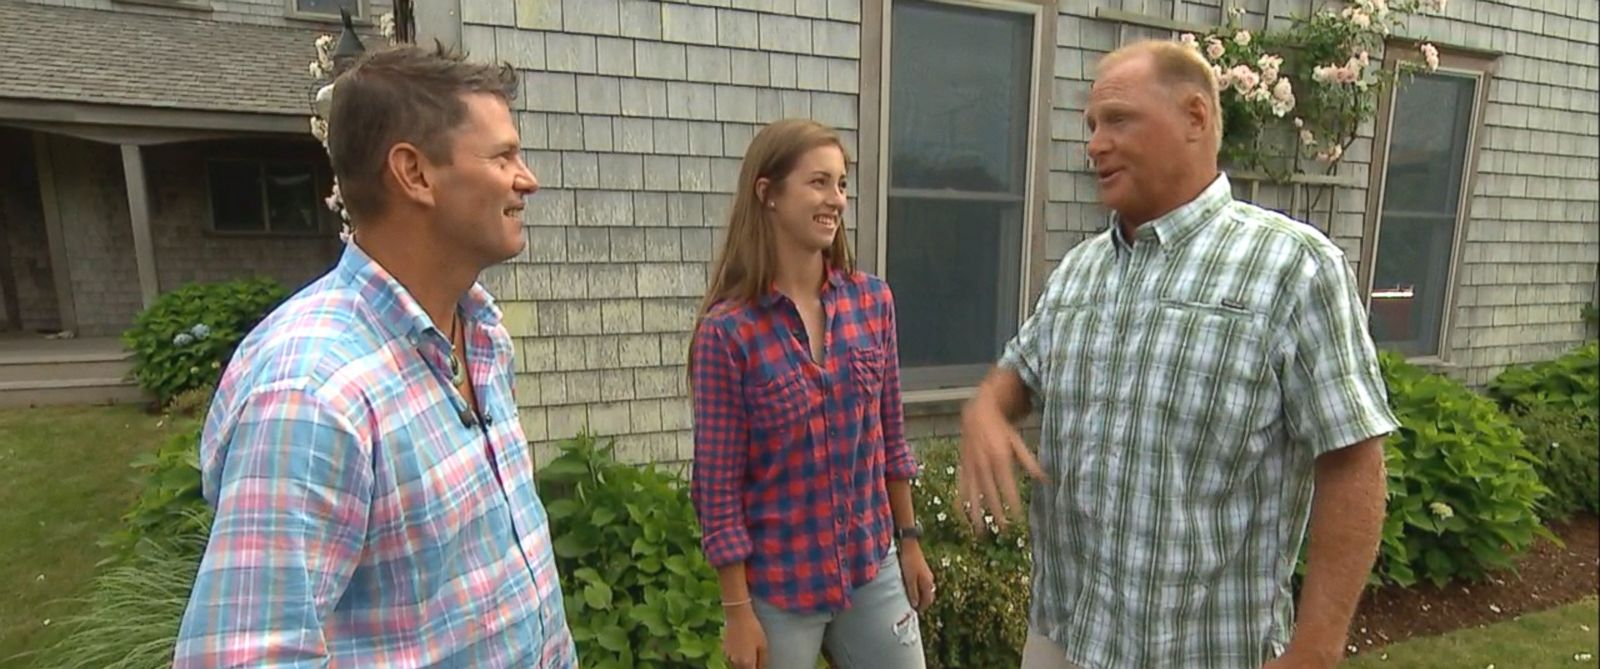 PHOTO: Derrick and Erynn Johns, the father and daughter rescued from a rip current off the Massachusetts coast recently, meet Tommy Vach who helped lifeguards pull them to safety.